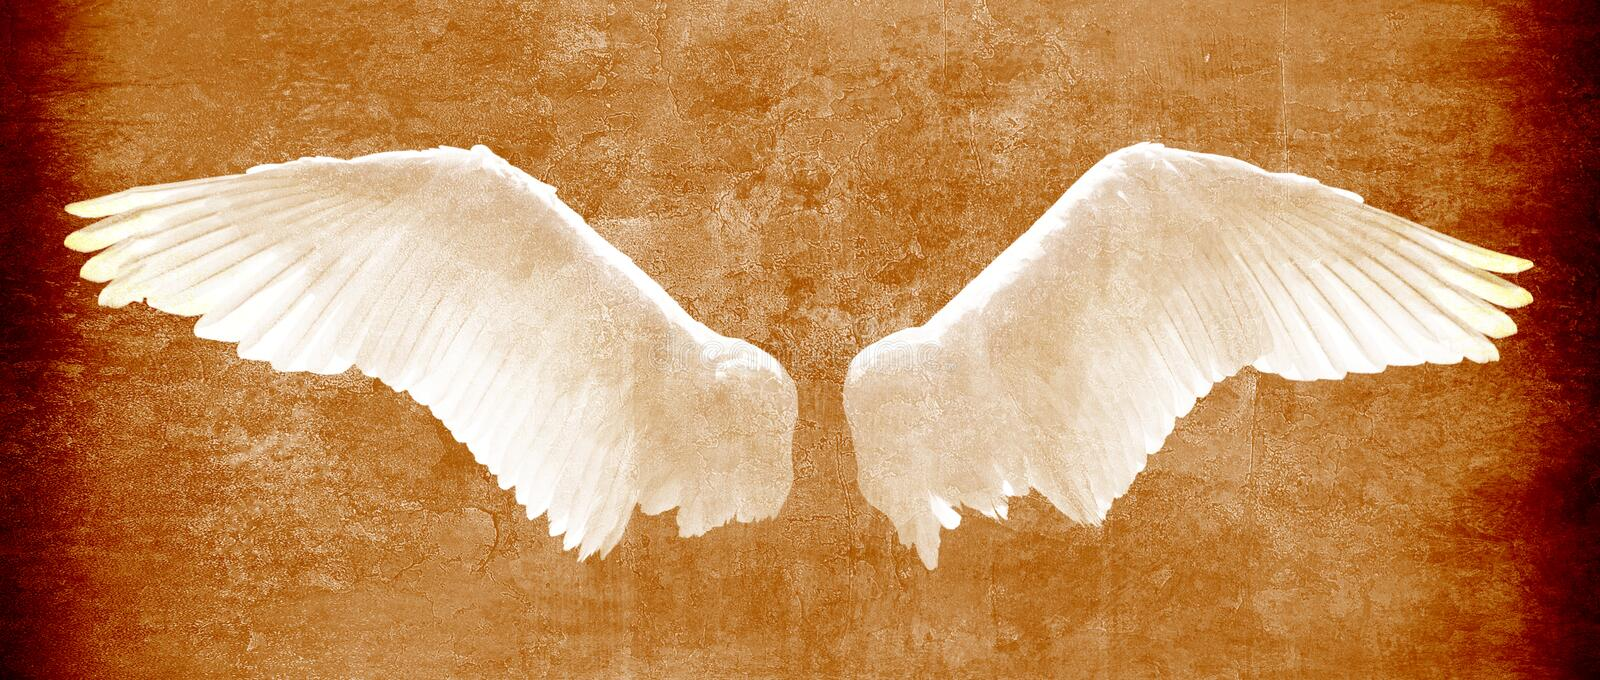 Angel wings on grunge texture in brown tones royalty free stock images